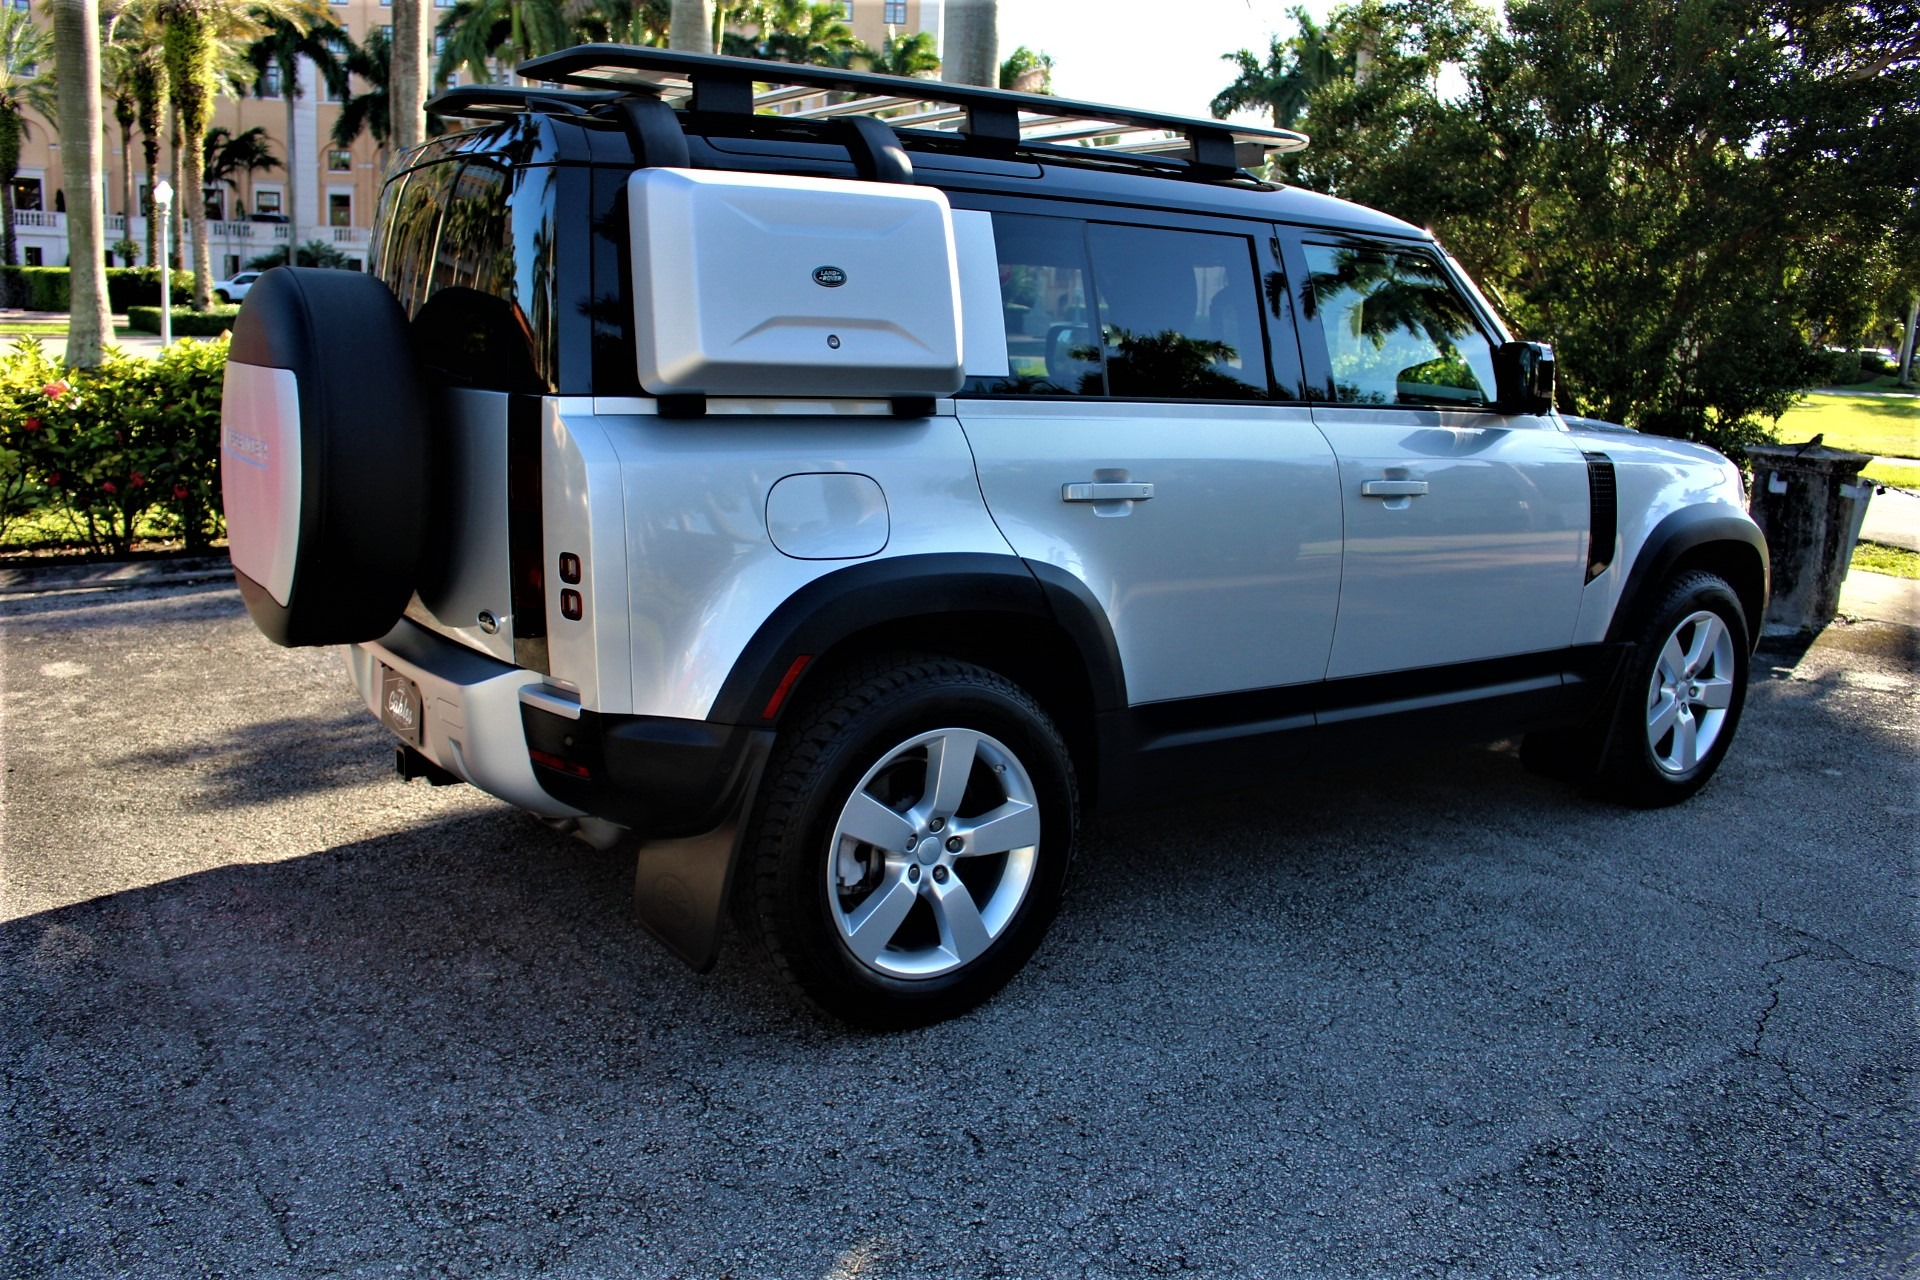 Used 2020 Land Rover Defender 110 HSE FIRST EDITION for sale $93,850 at The Gables Sports Cars in Miami FL 33146 2